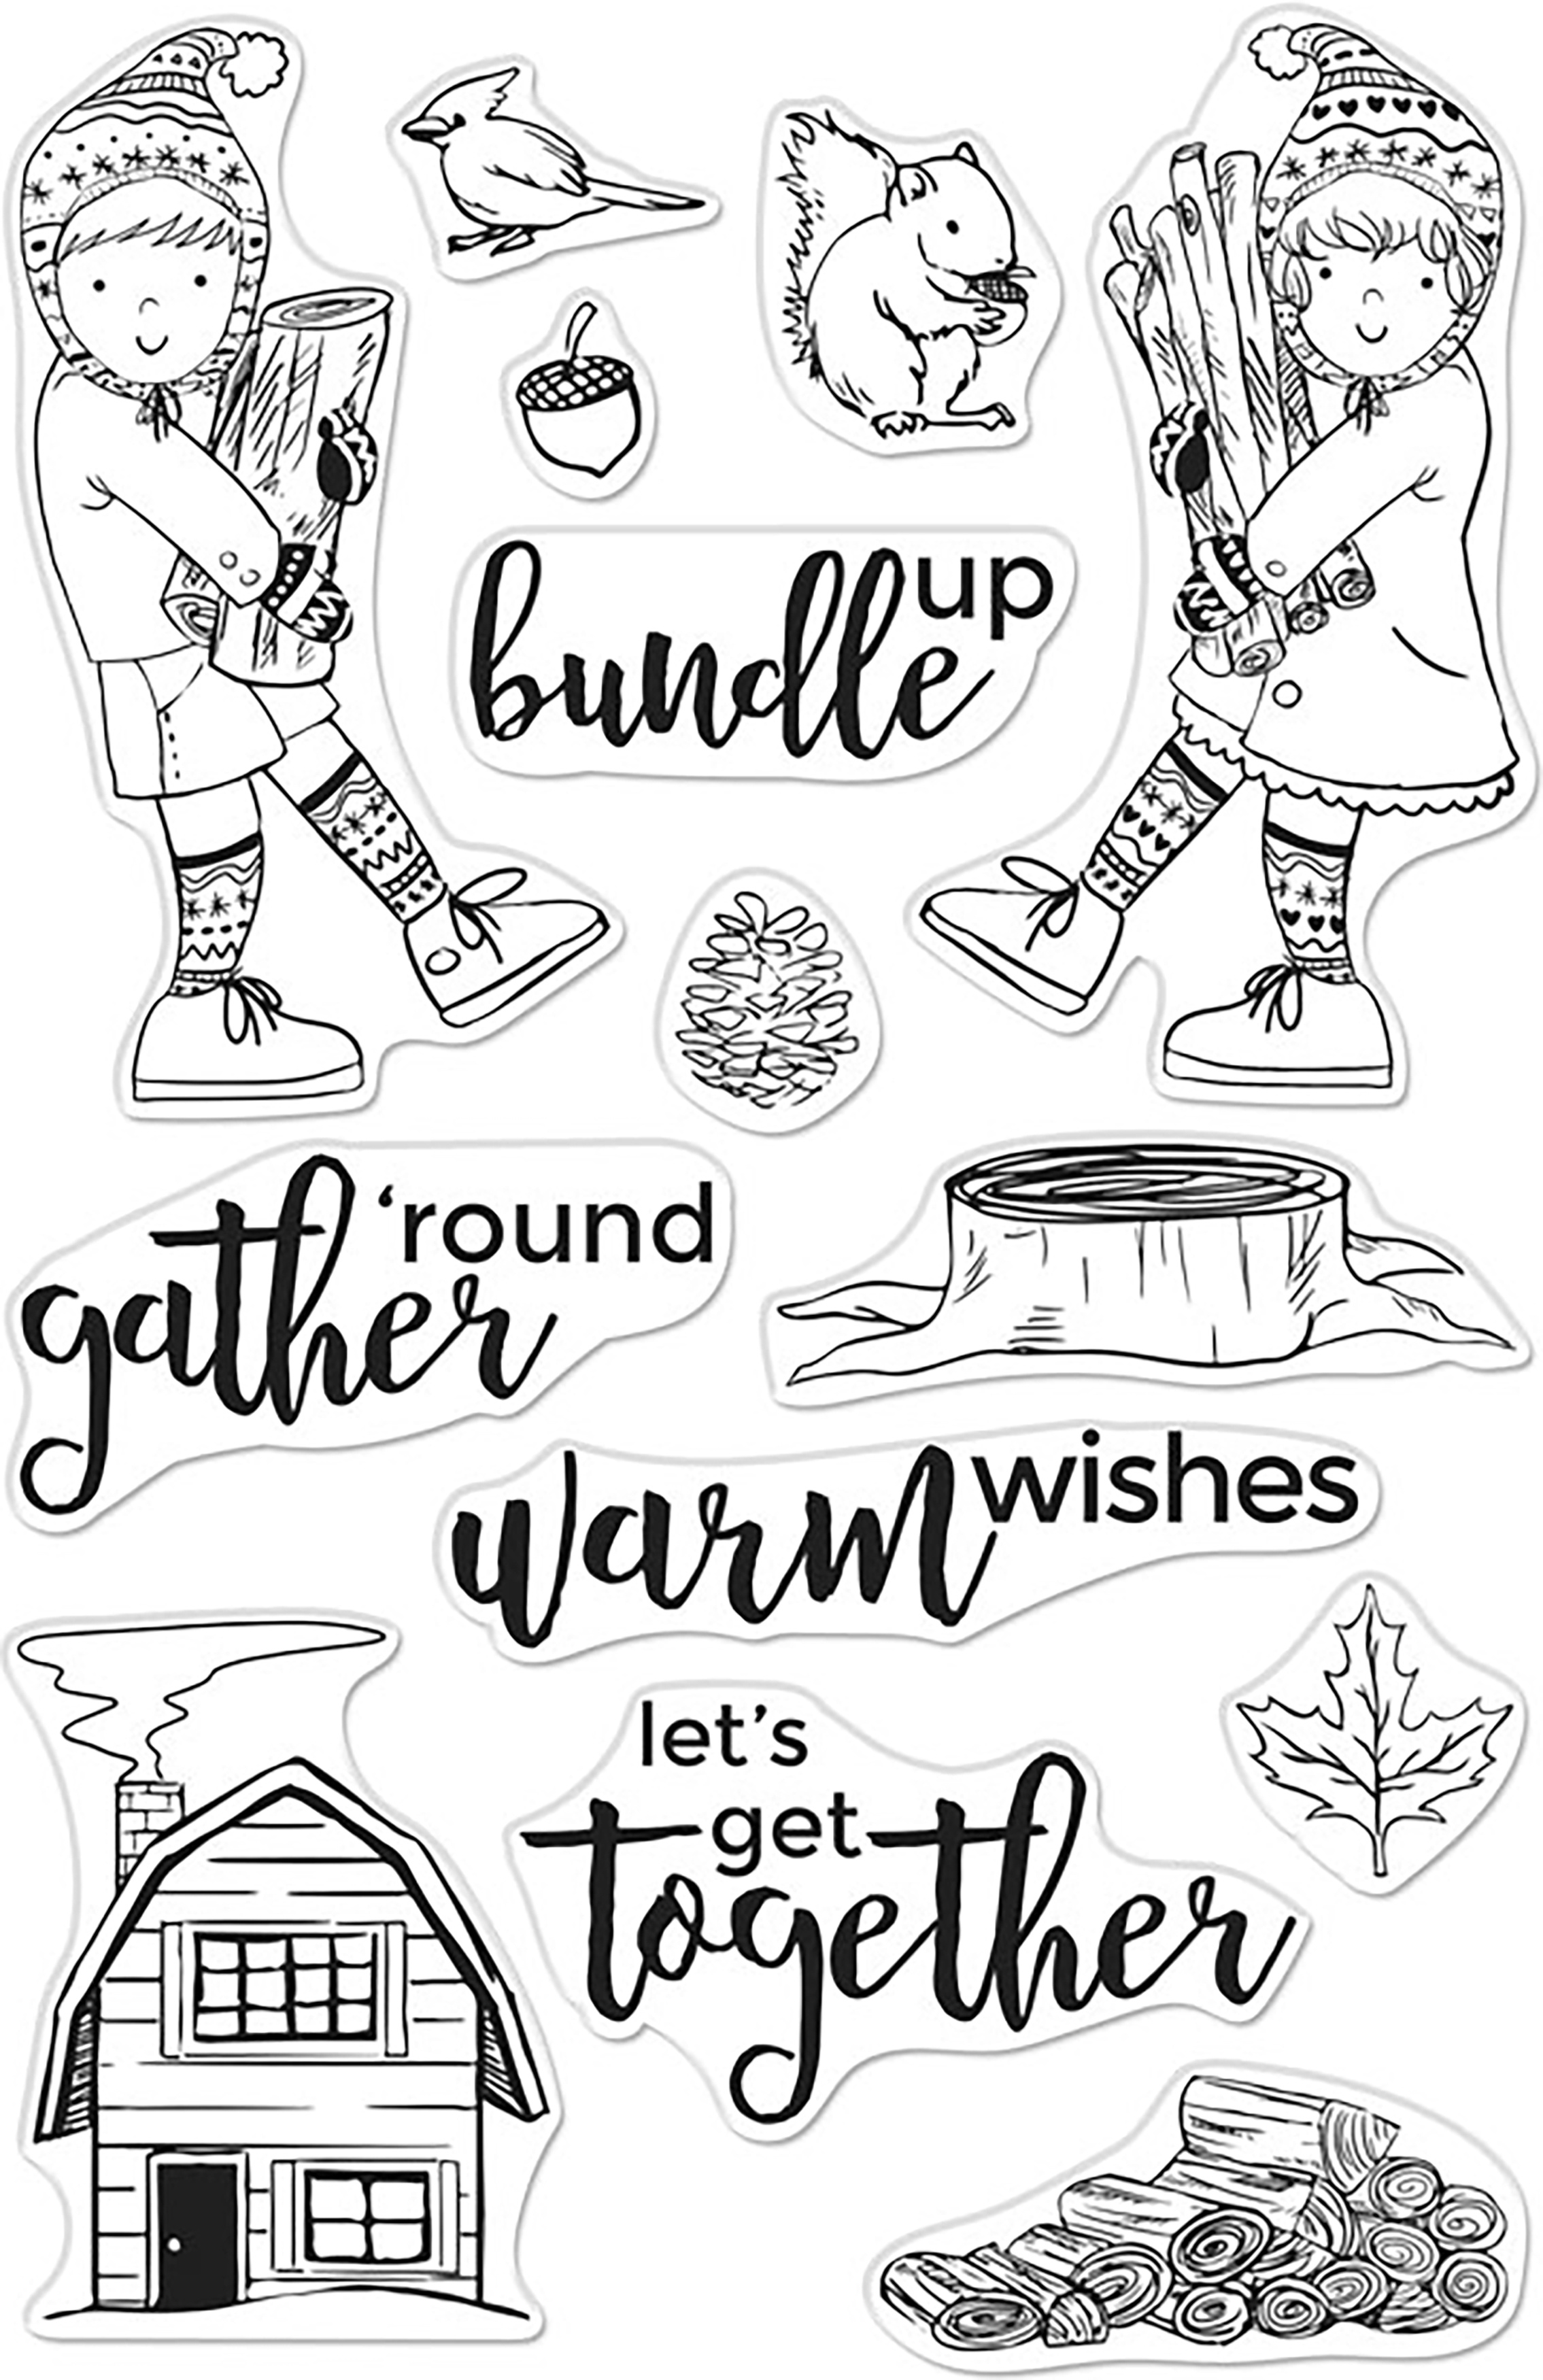 Bundle Up Stamps